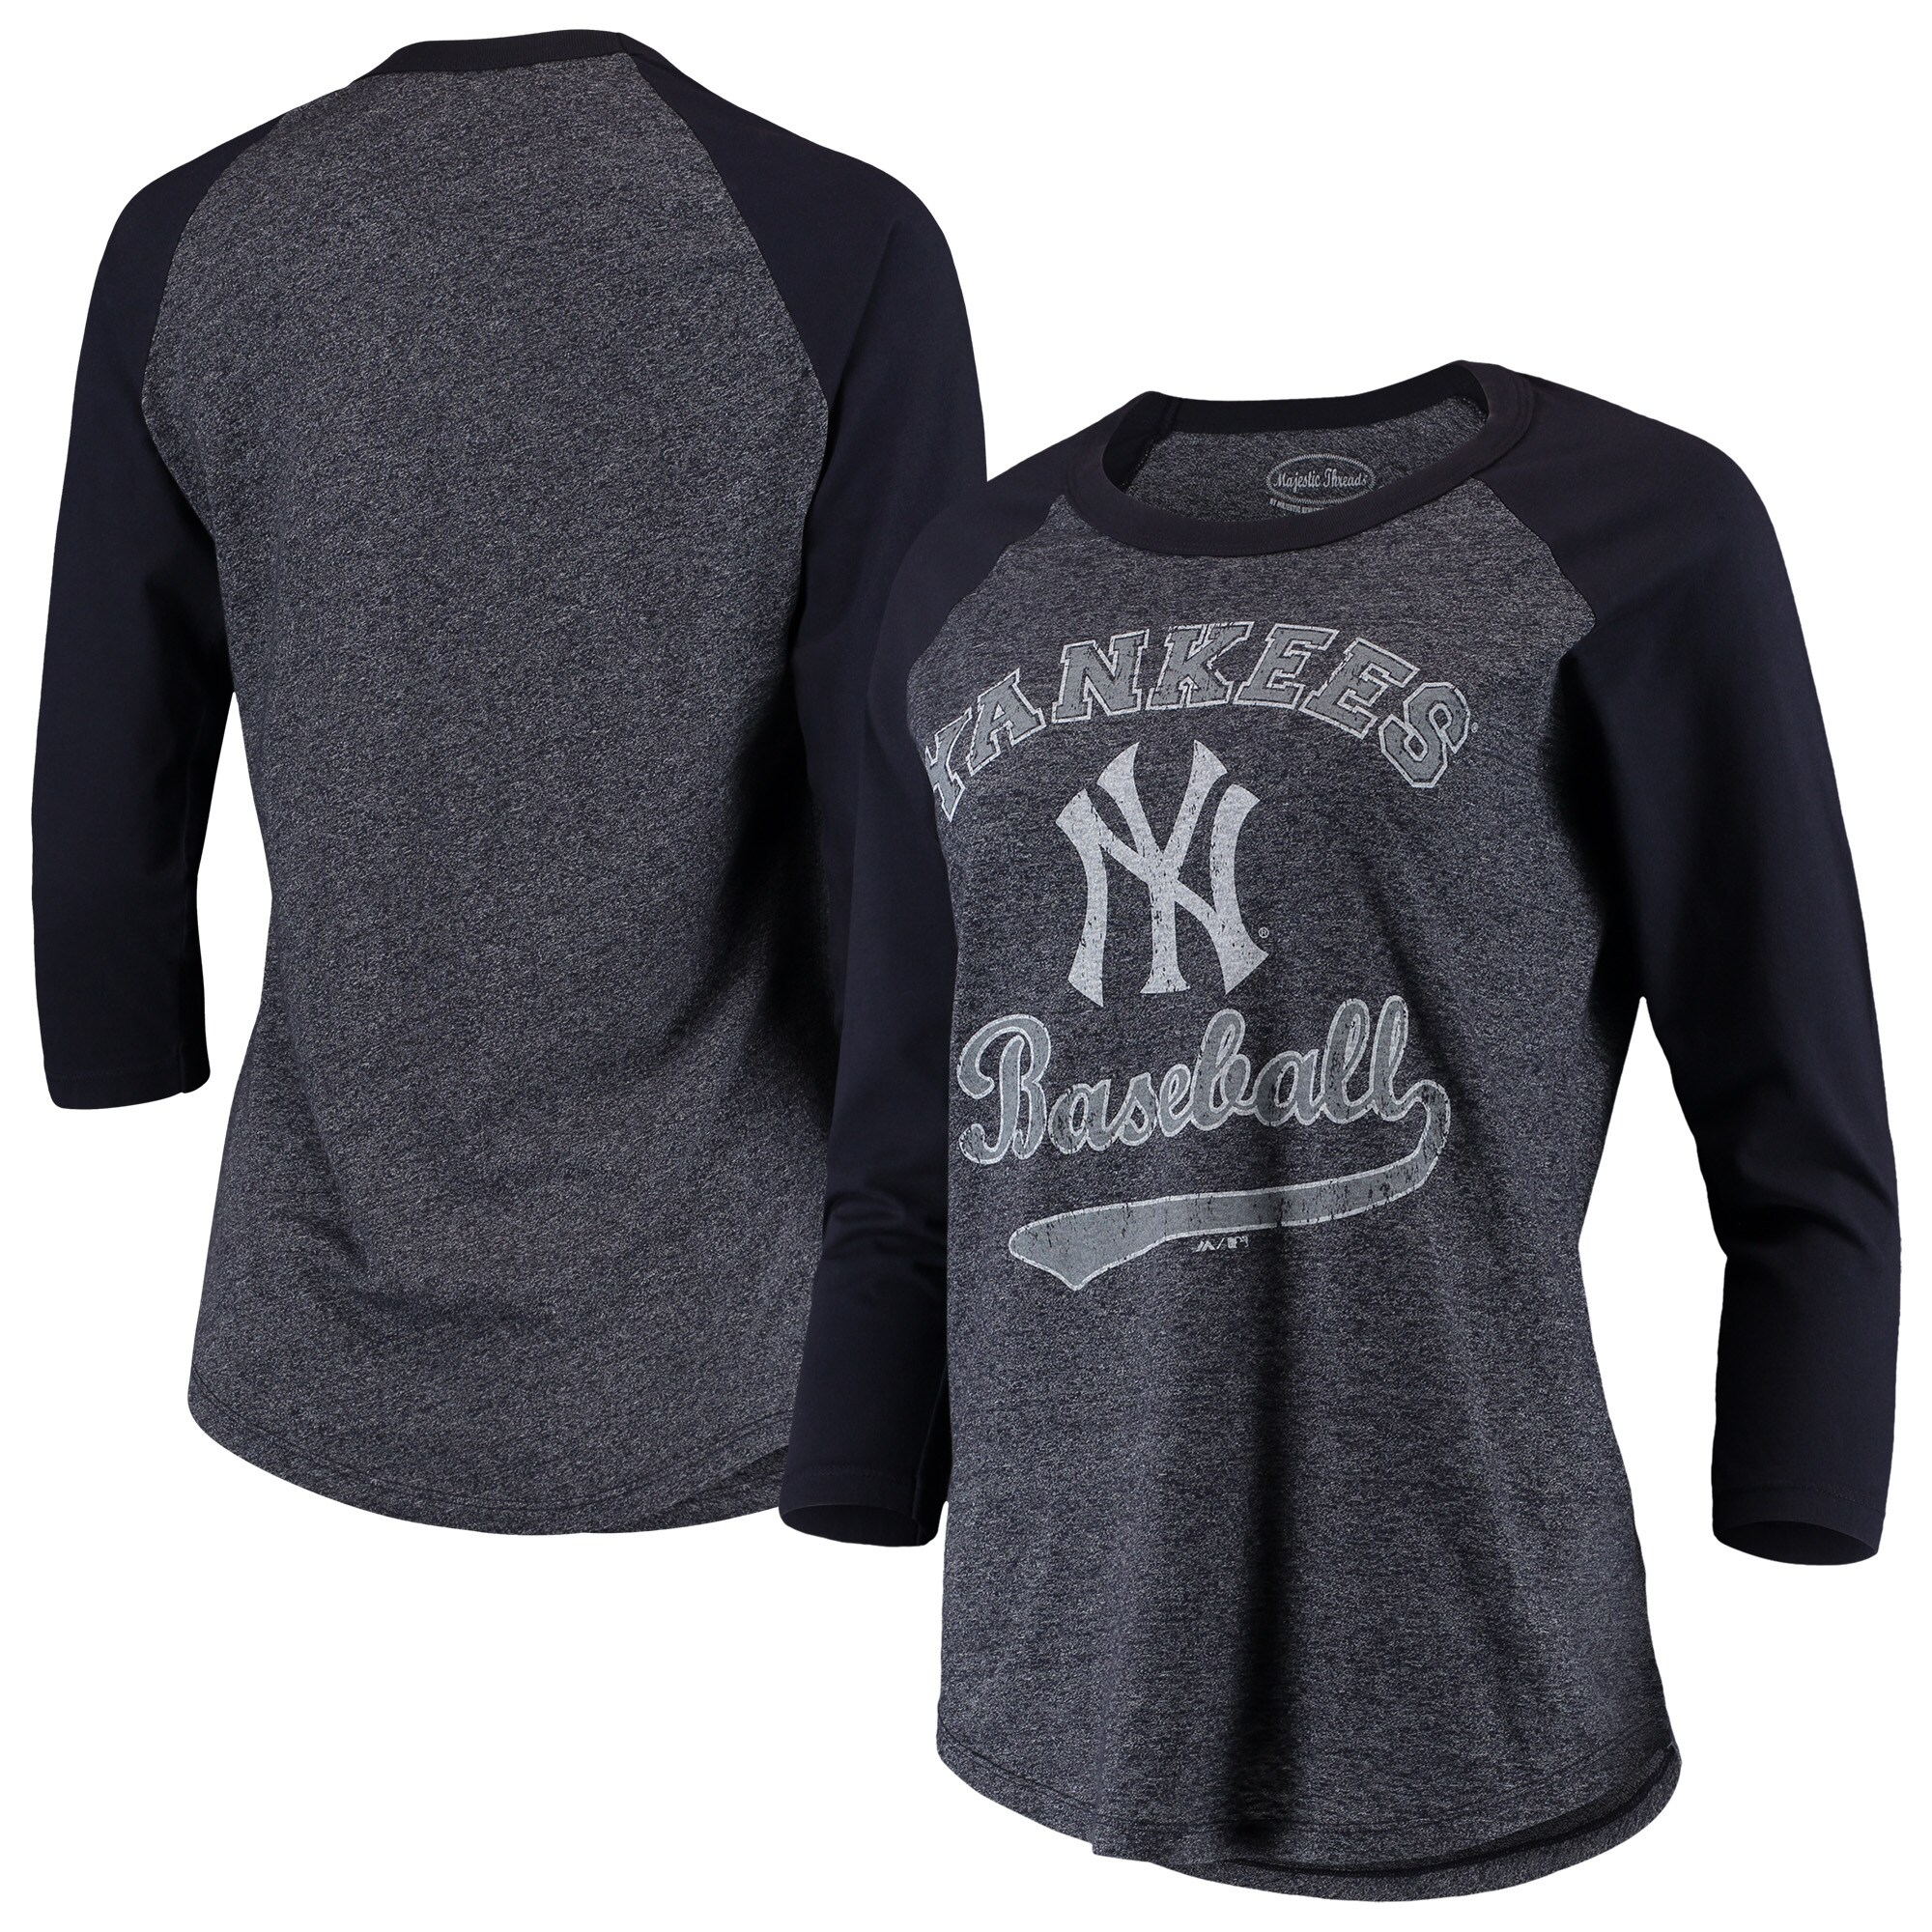 New York Yankees Majestic Threads Women's Team Baseball Three-Quarter Raglan Sleeve Tri-Blend T-Shirt - Navy